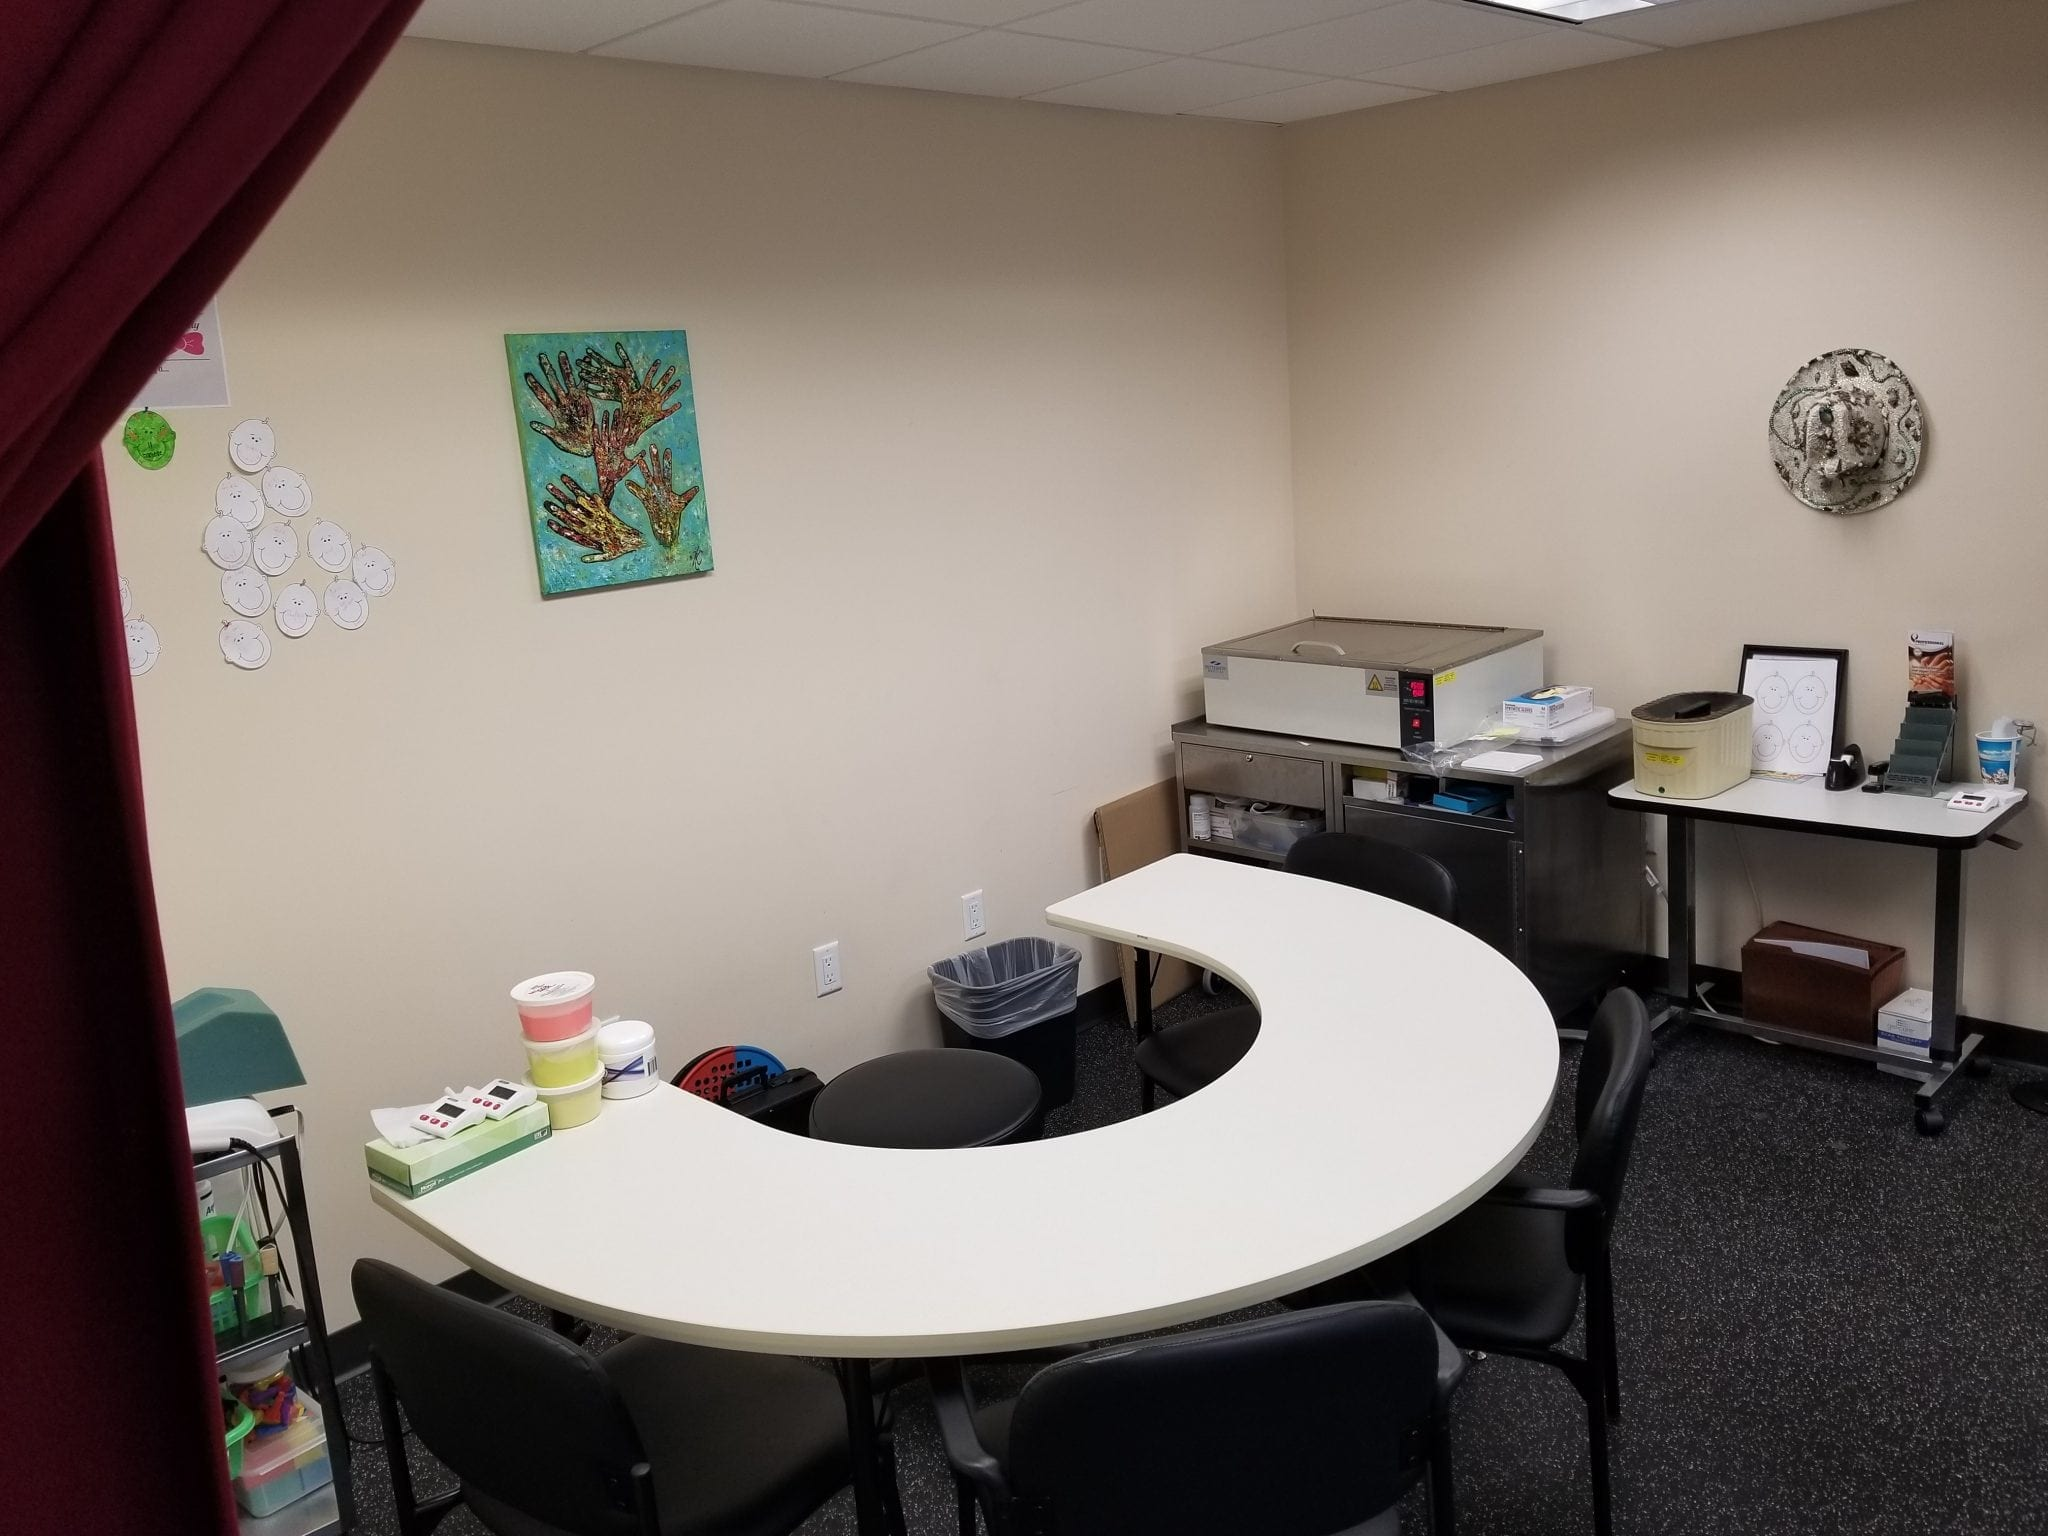 Here is an image of a table at our physical therapy clinic in East Englewood, New Jersey.